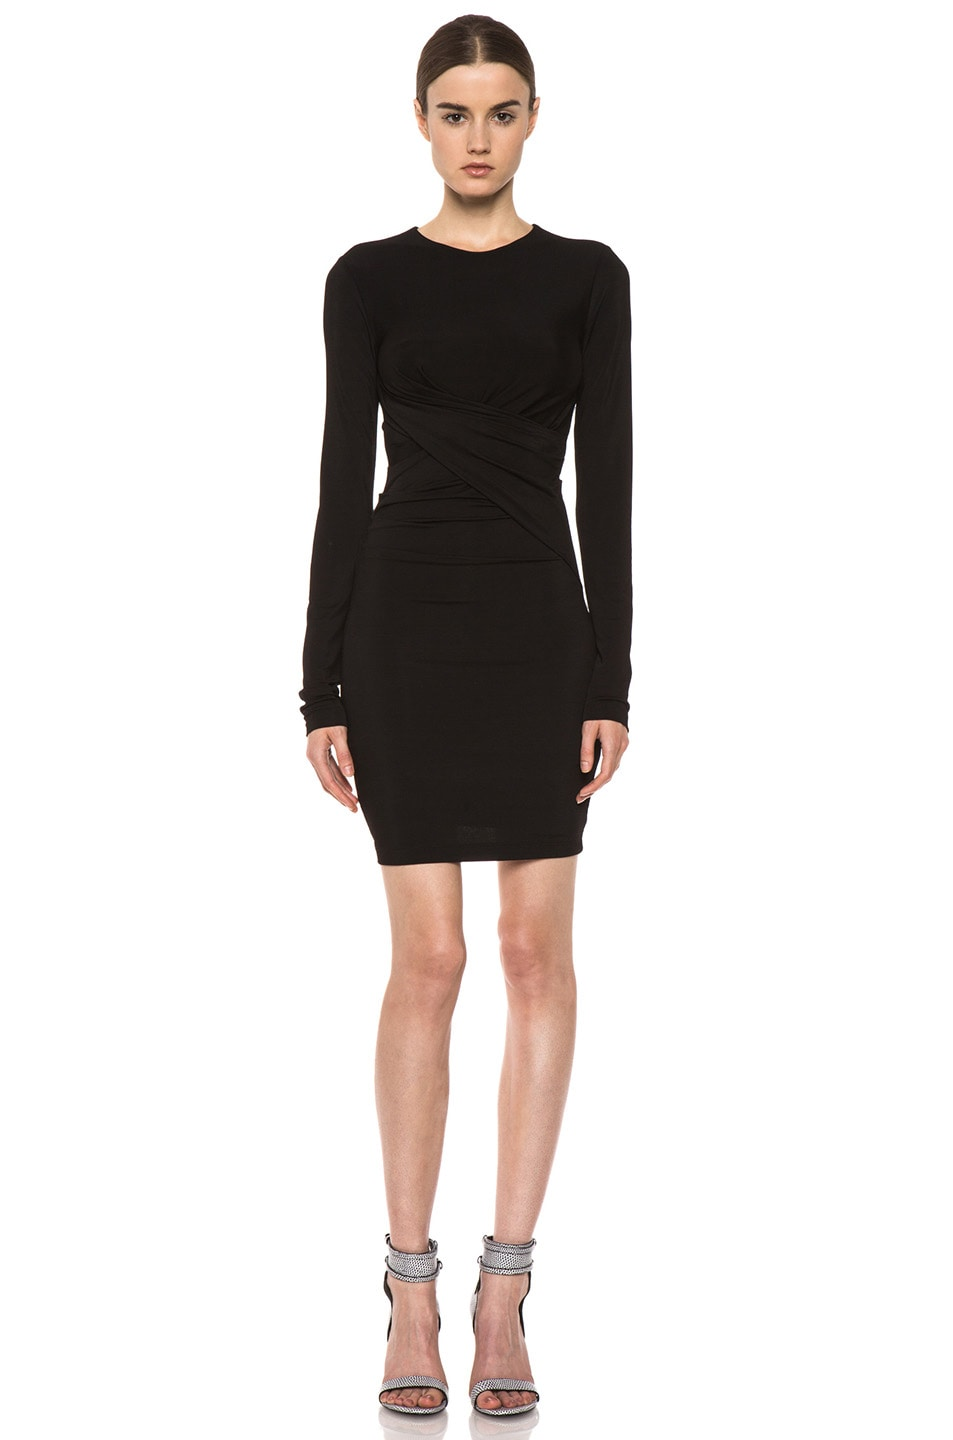 Image 1 of T by Alexander Wang Pique Mesh Long Sleeve Viscose-Blend Twist Dress in Black